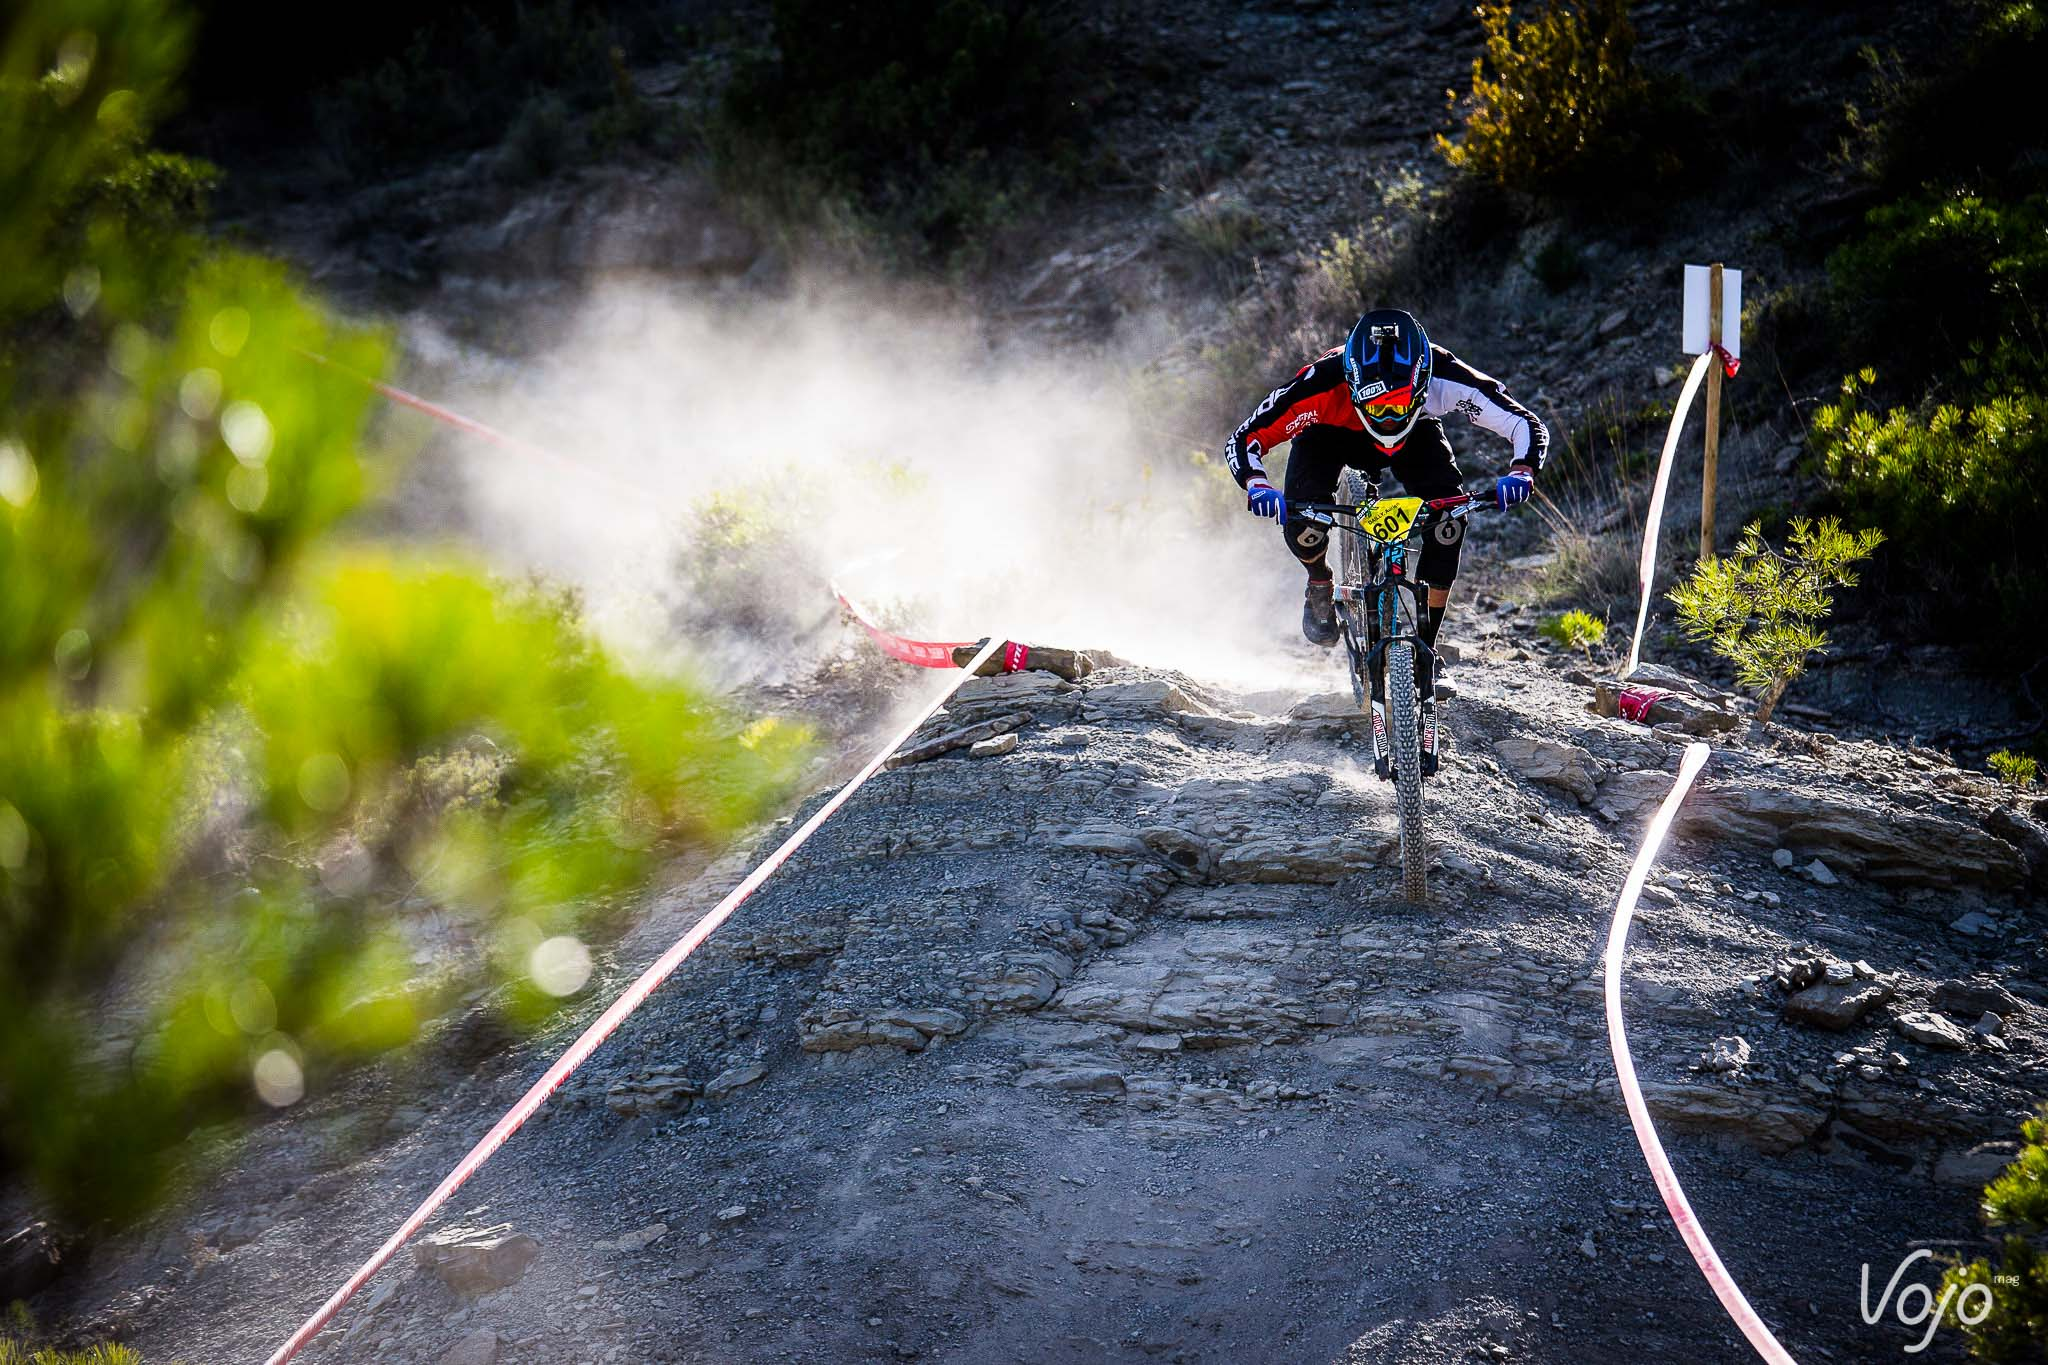 Enduro_World_Series_7_Spain_Ainsa_Zona_Zero_2015_Copyright_VojoMag-32